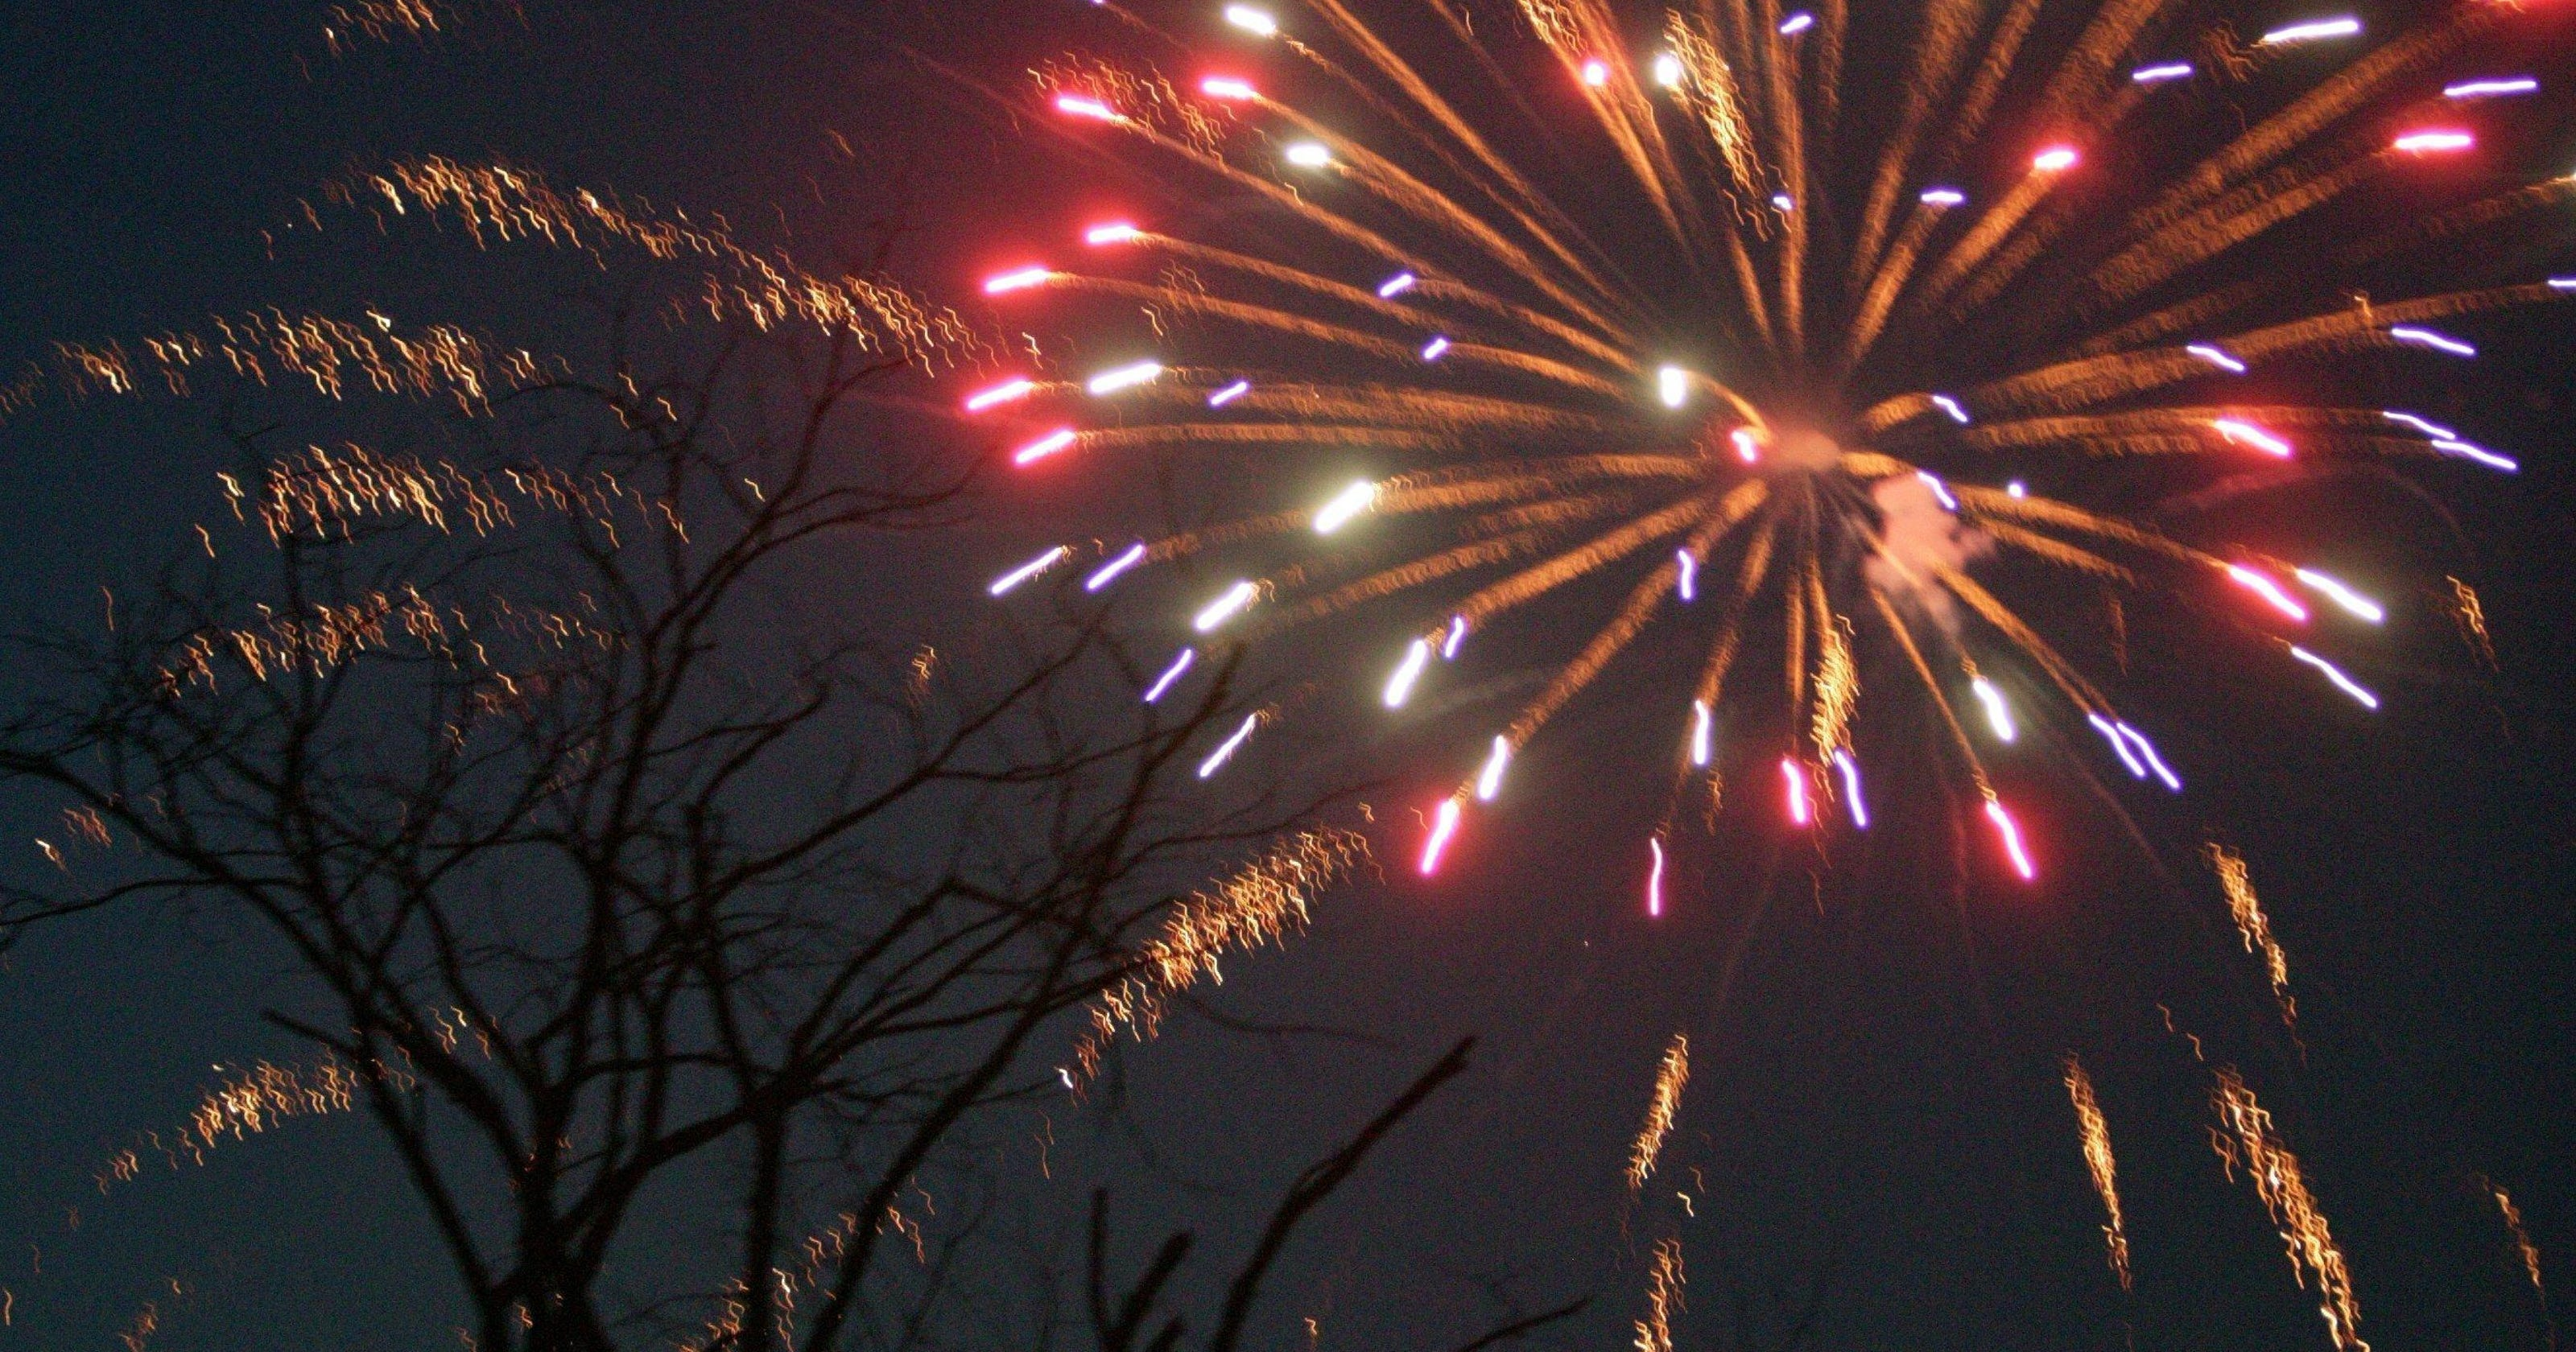 Fireworks: Where to watch in metro Detroit this 4th of July